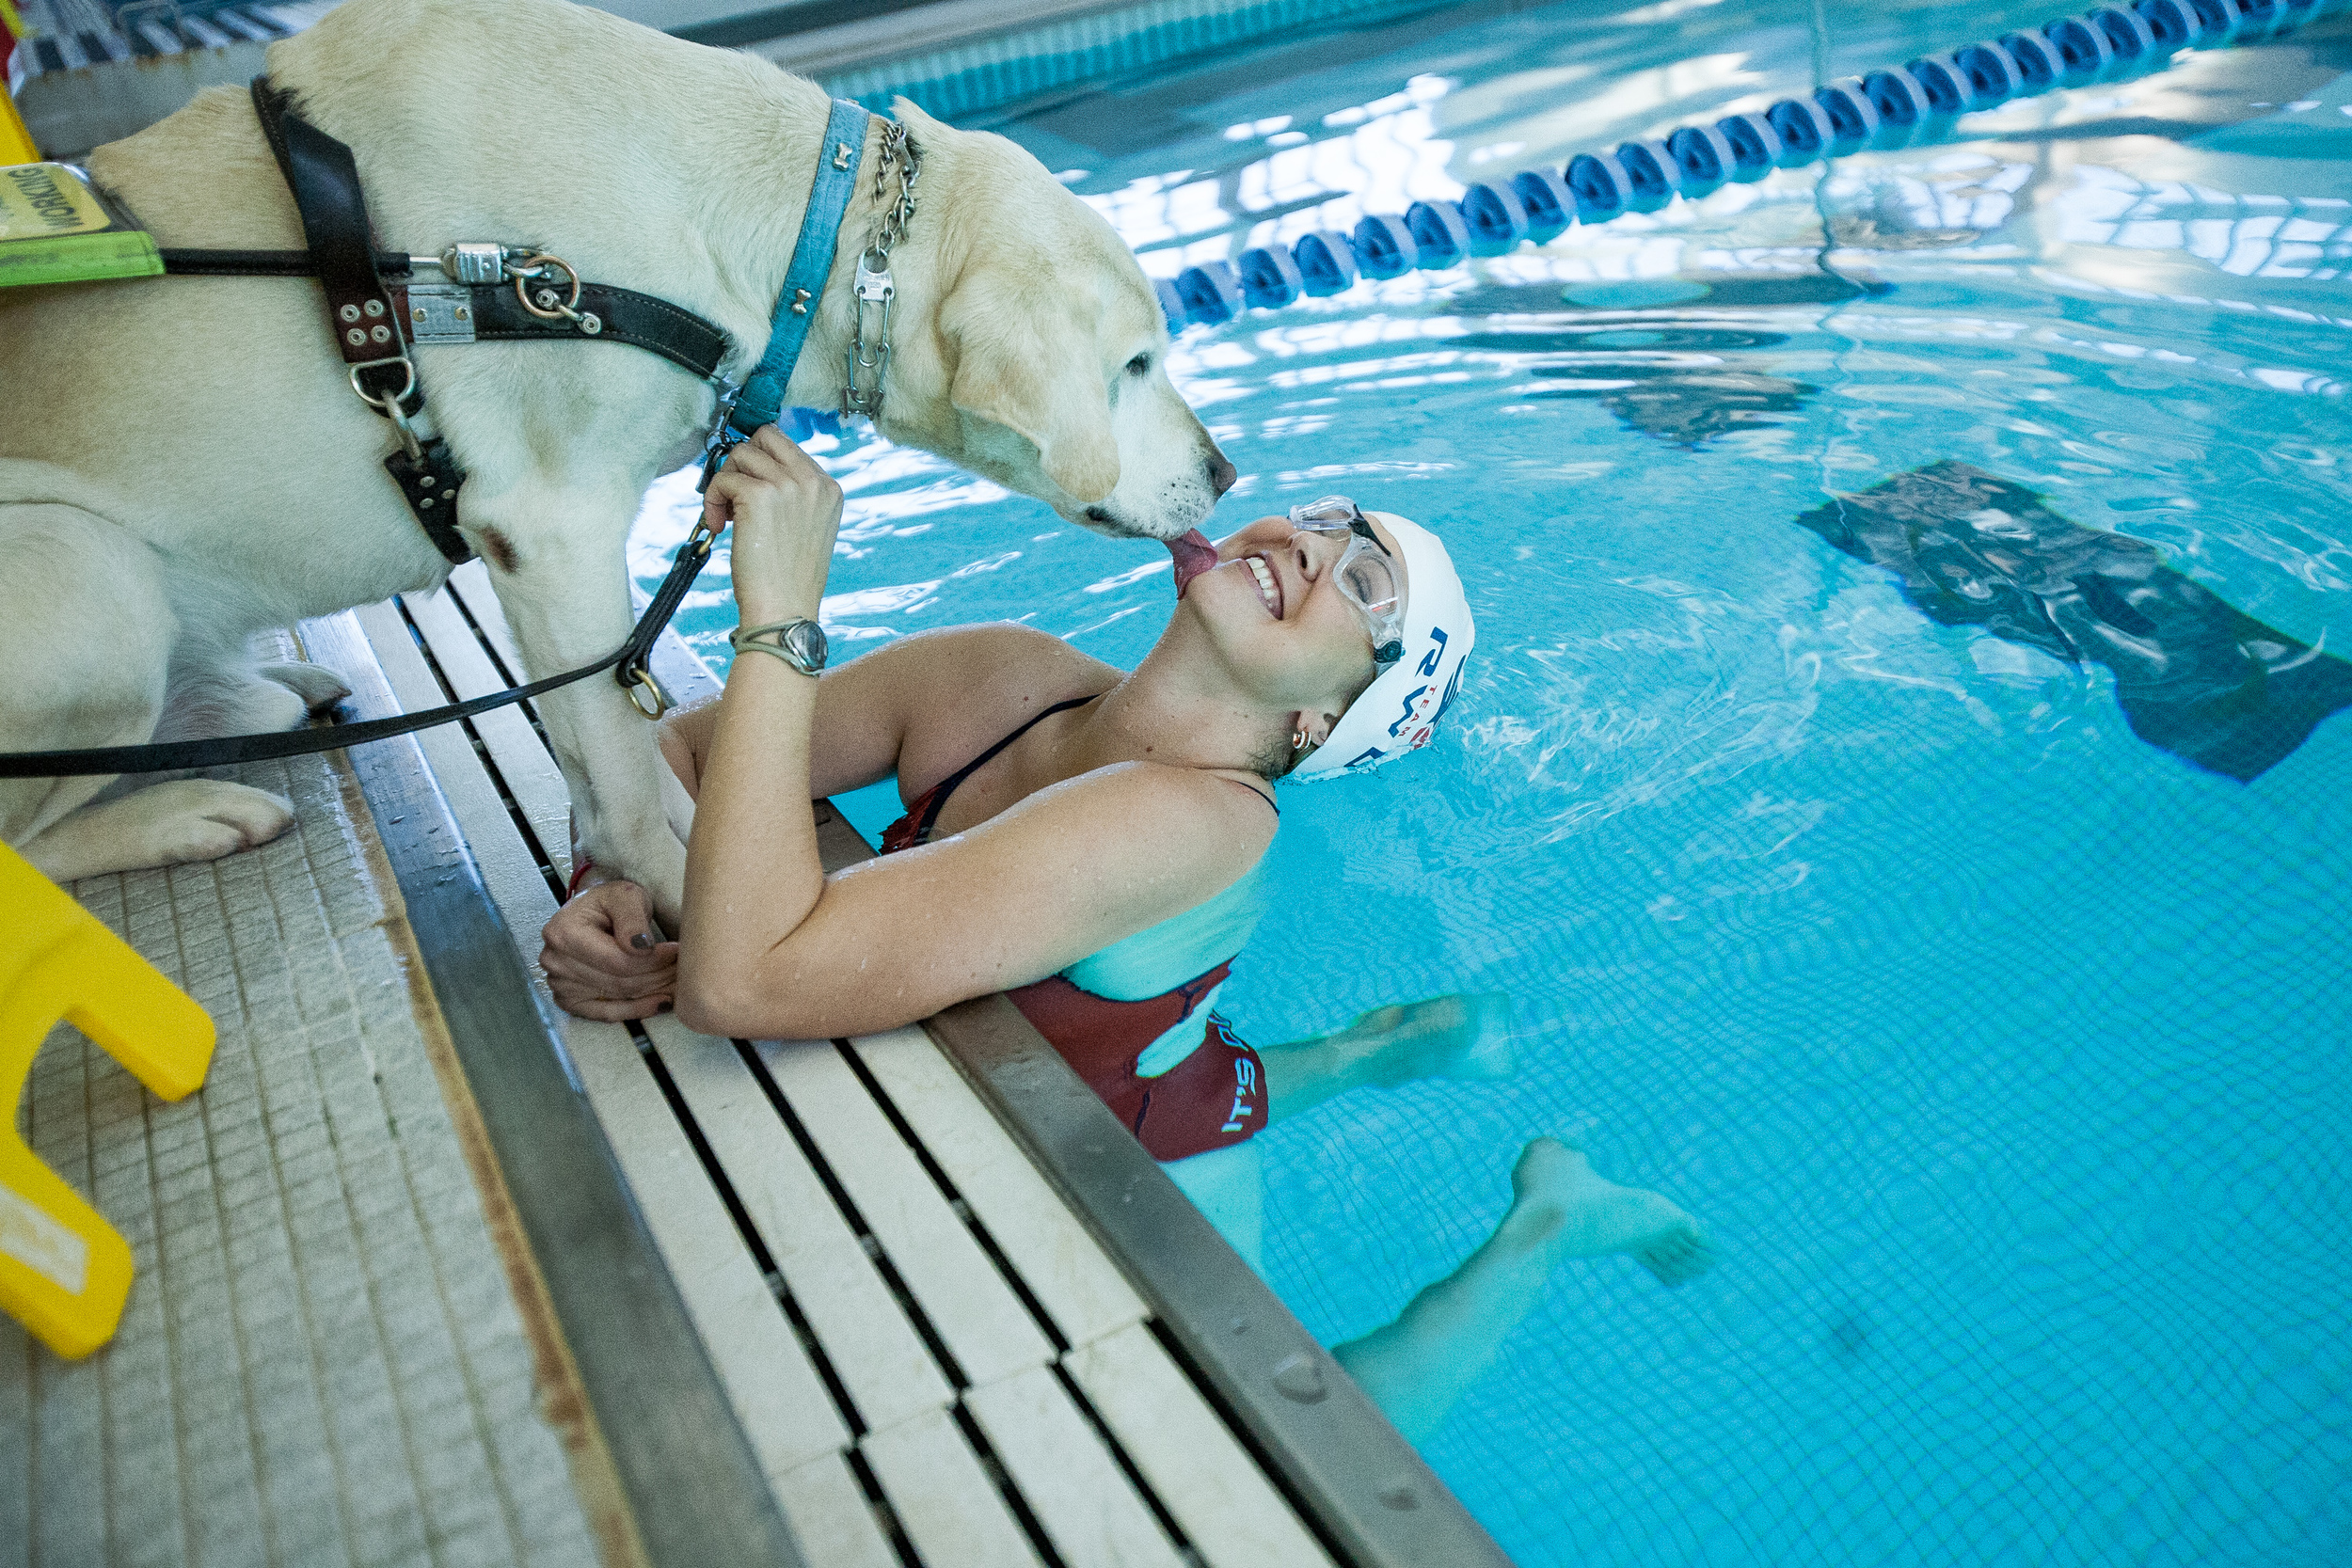 Amy Dixon, a visually impaired sommelier and triathlete, gets kisses from her guide dog Elvis at the YMCA at Greenwich in Greenwich, Connecticut, Thursday, Dec. 12, 2013. Dixon is training for several championship competitions next year, including the USA Paratriathlon National Championship and the PATCO Triathlon Pan American Championships.